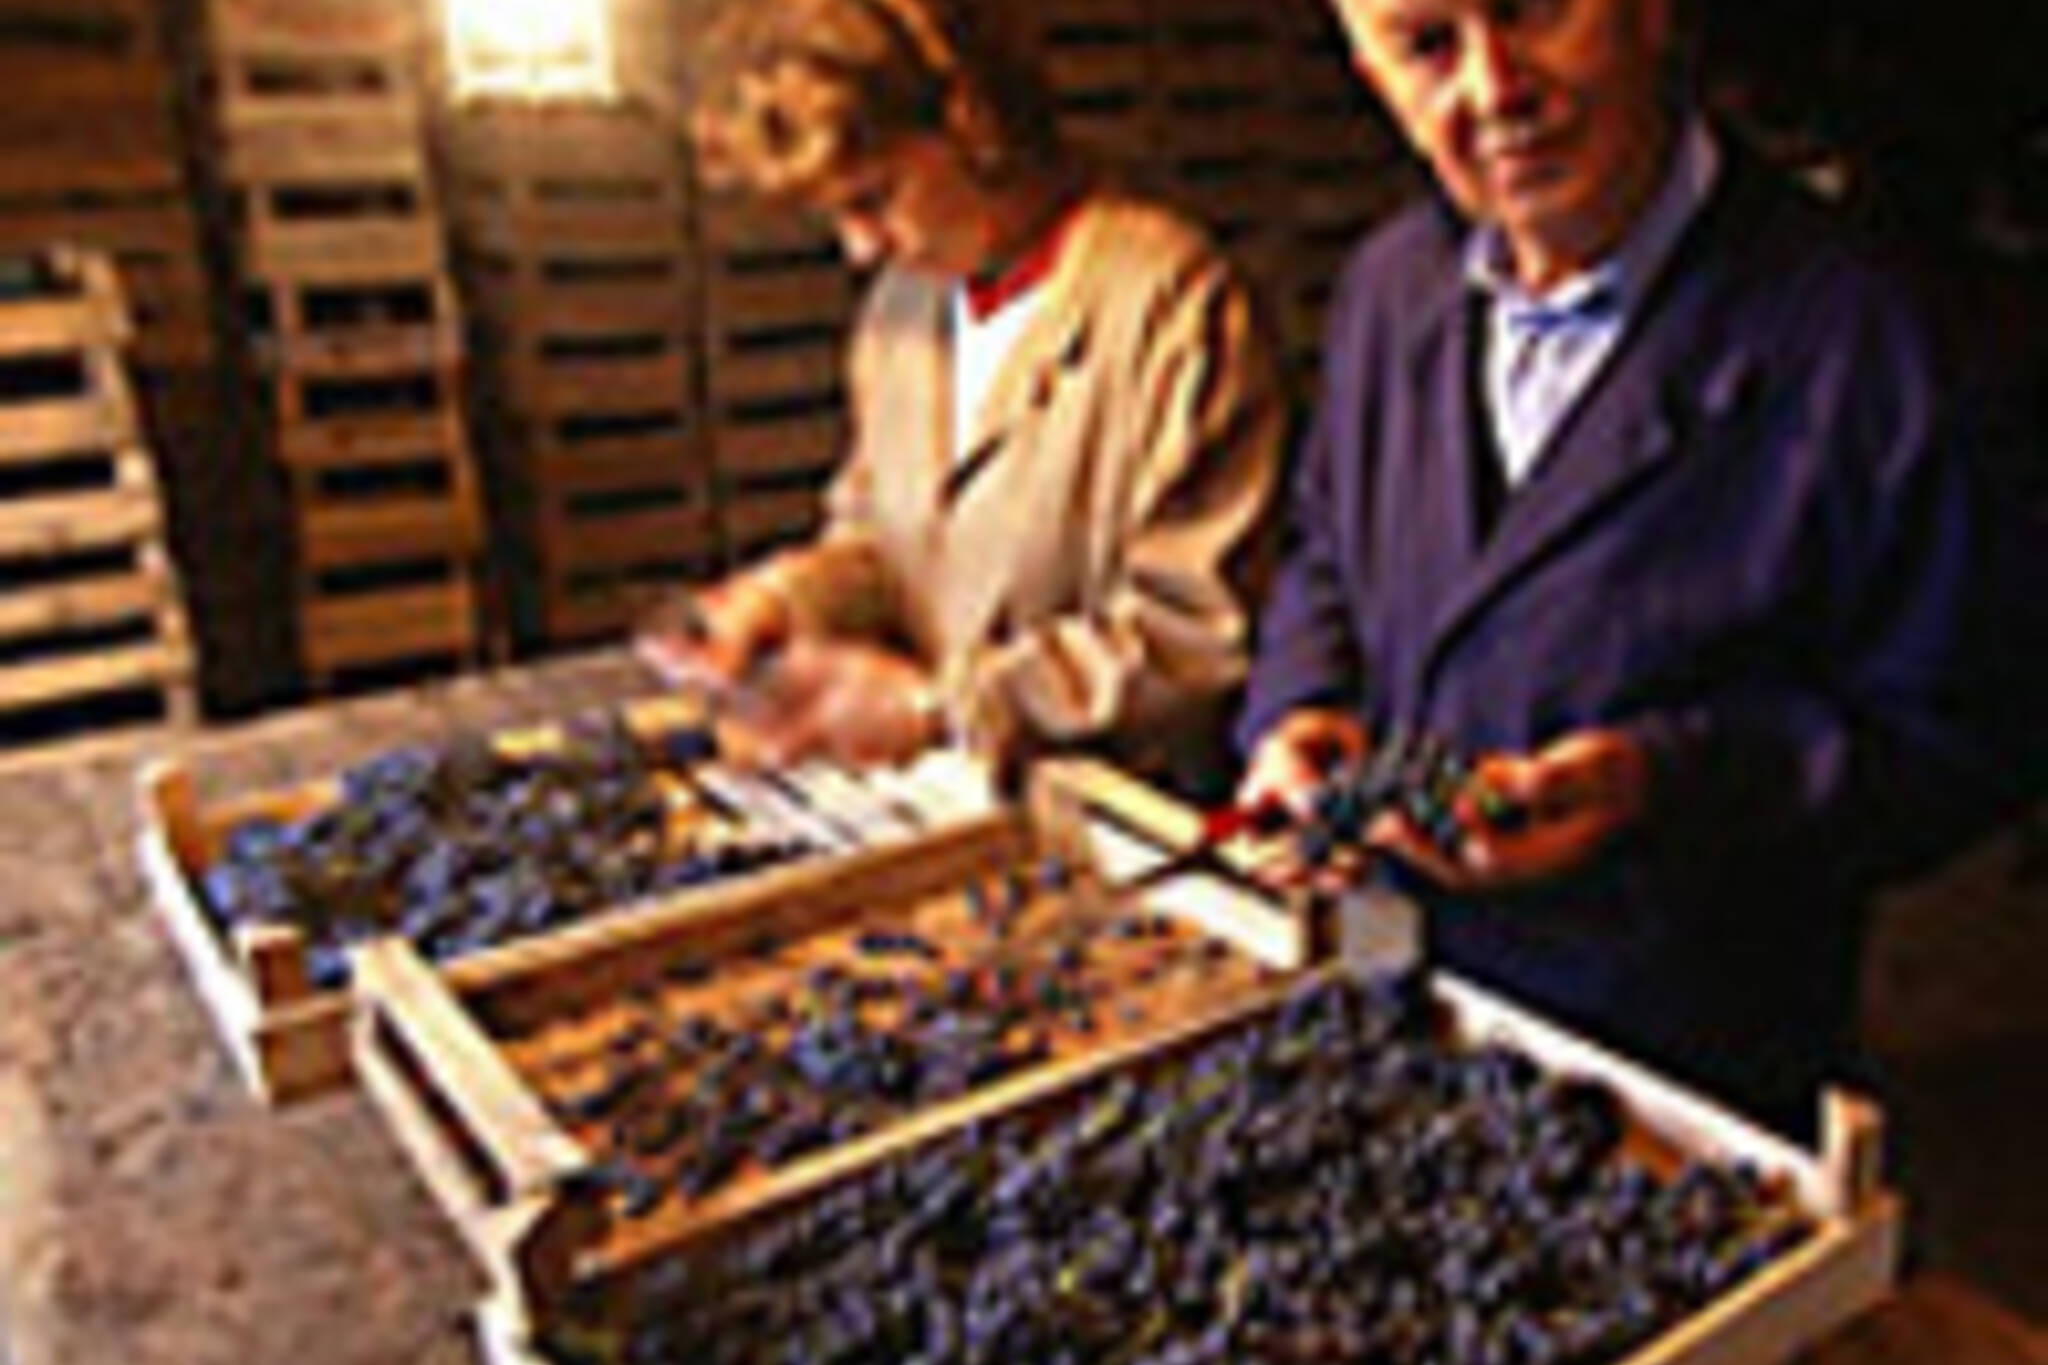 Guiseppe Quintarelli (right) making his magic. (Image from www.winephotos.com)